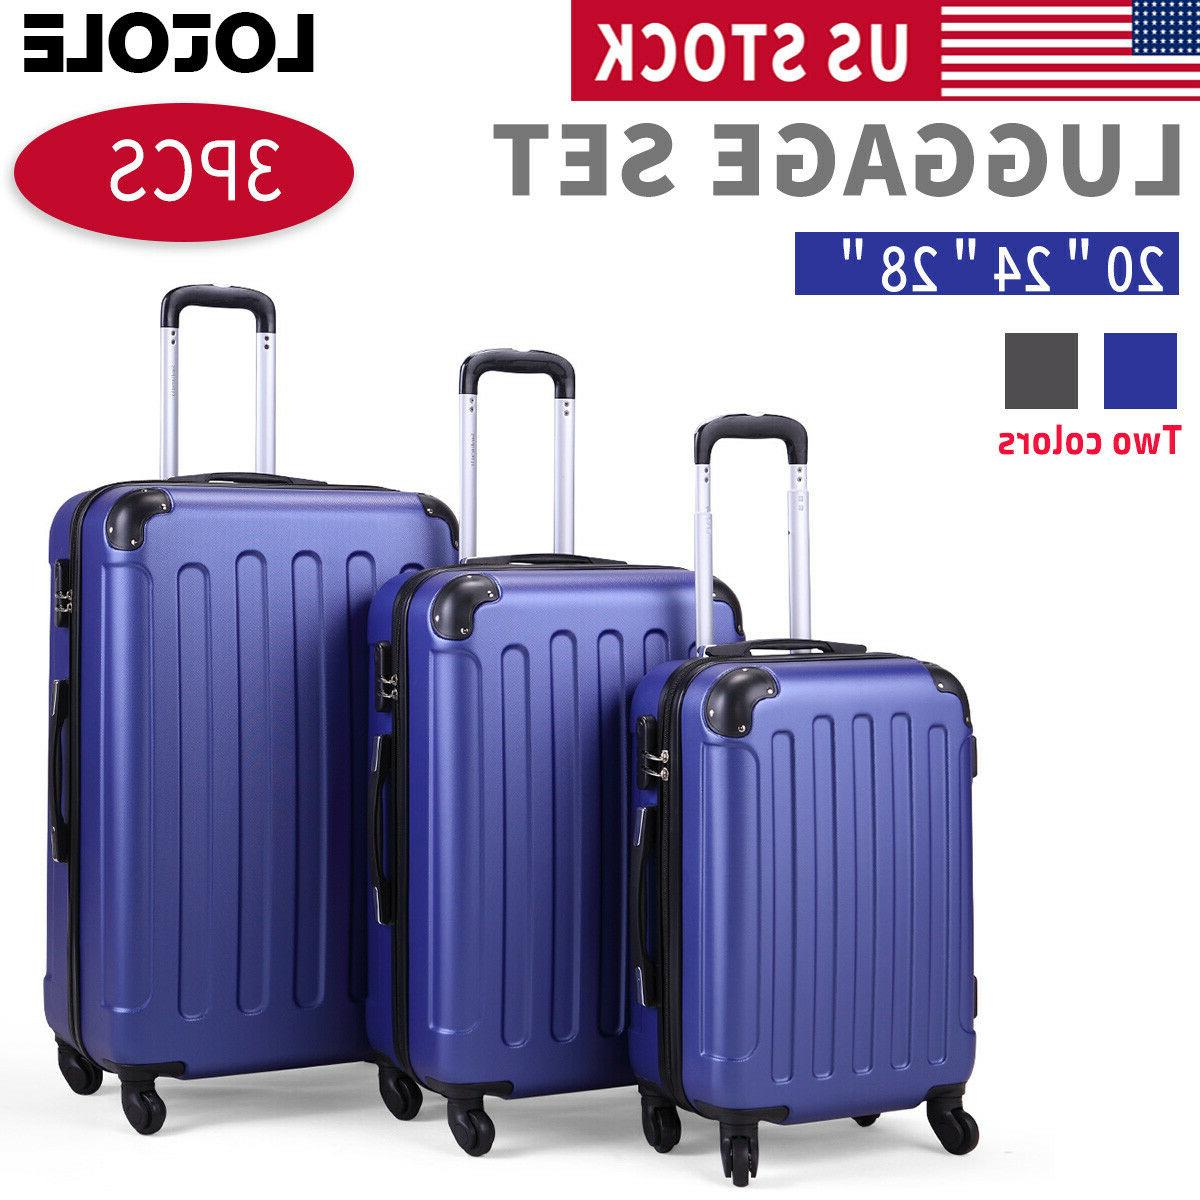 3 piece luggage carry on set trolley